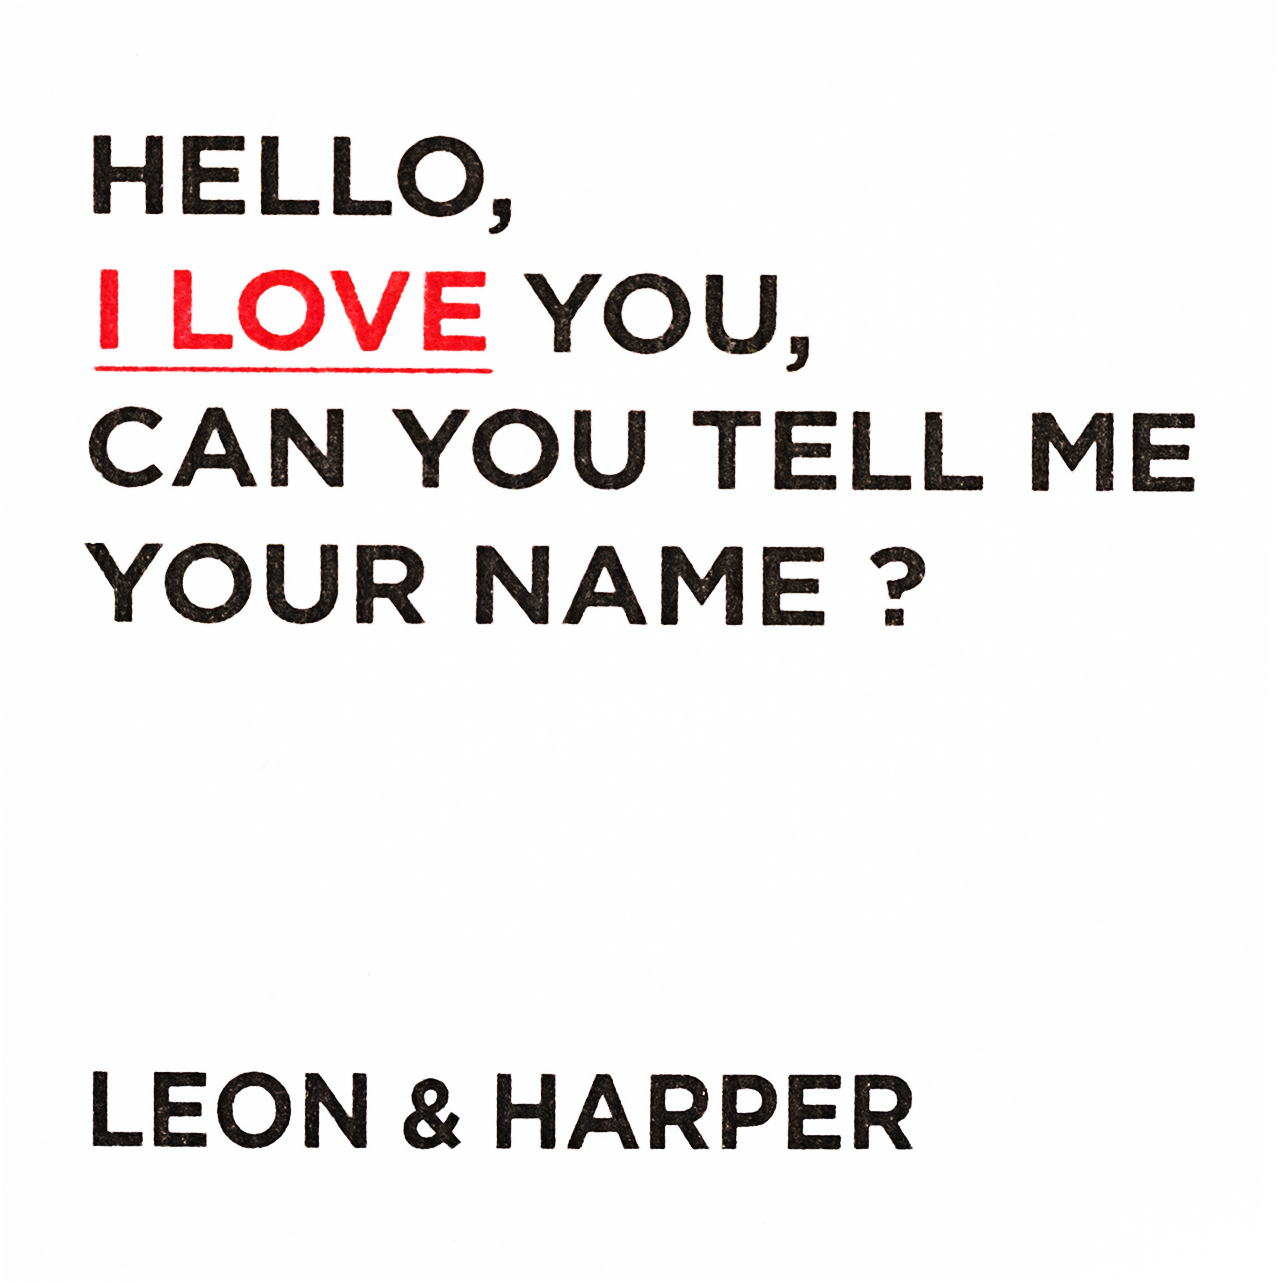 leon-and-harper.jpg